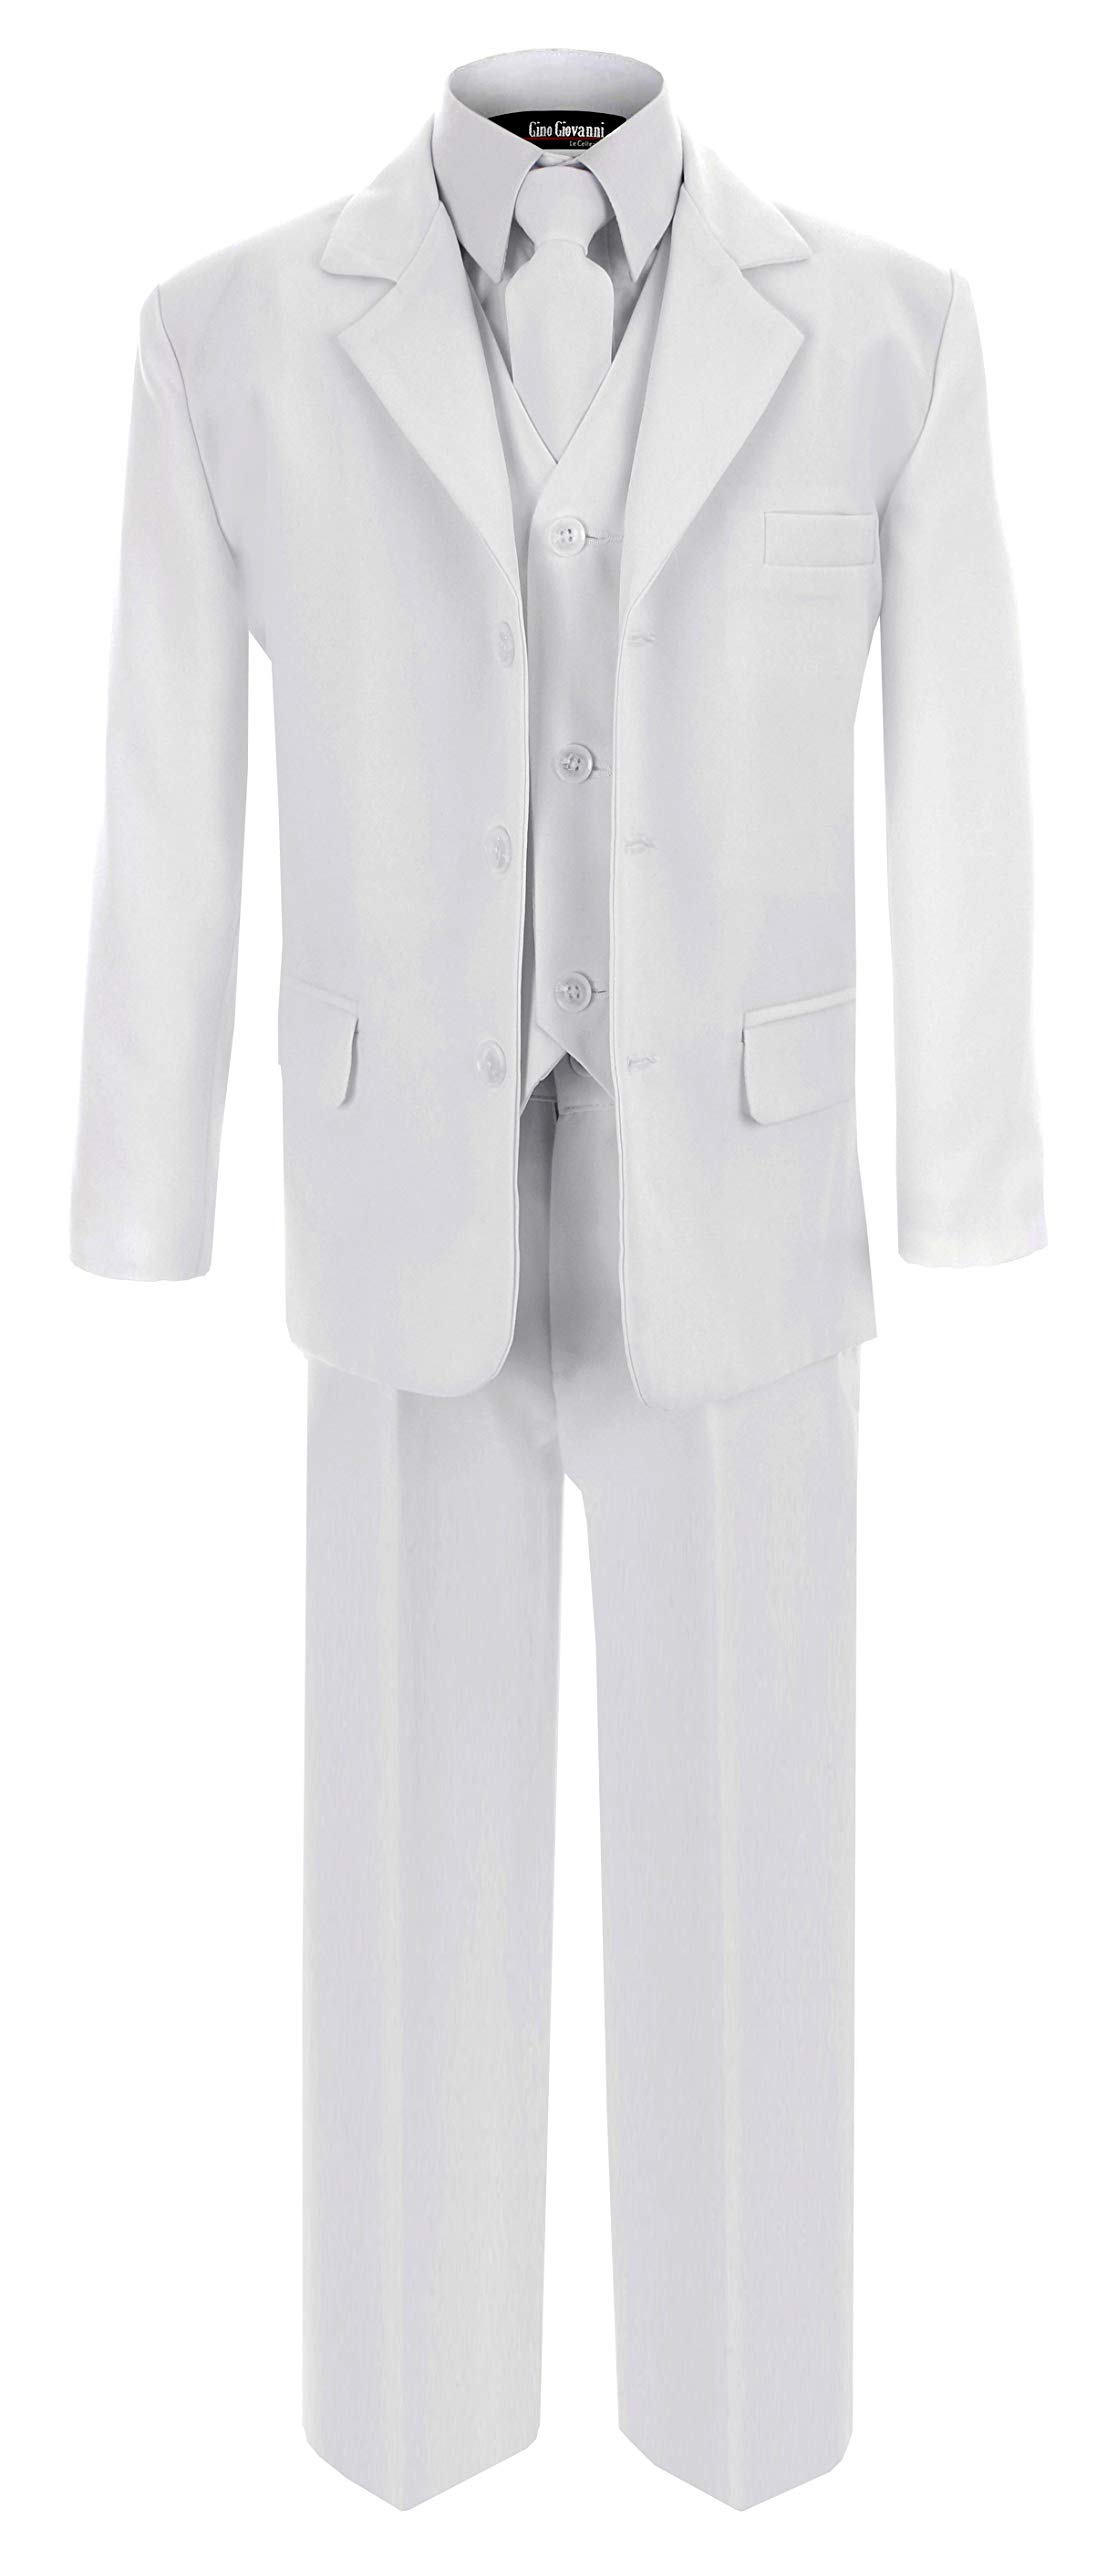 G230 White First Communion and Wedding Suit Set for Boys (12)